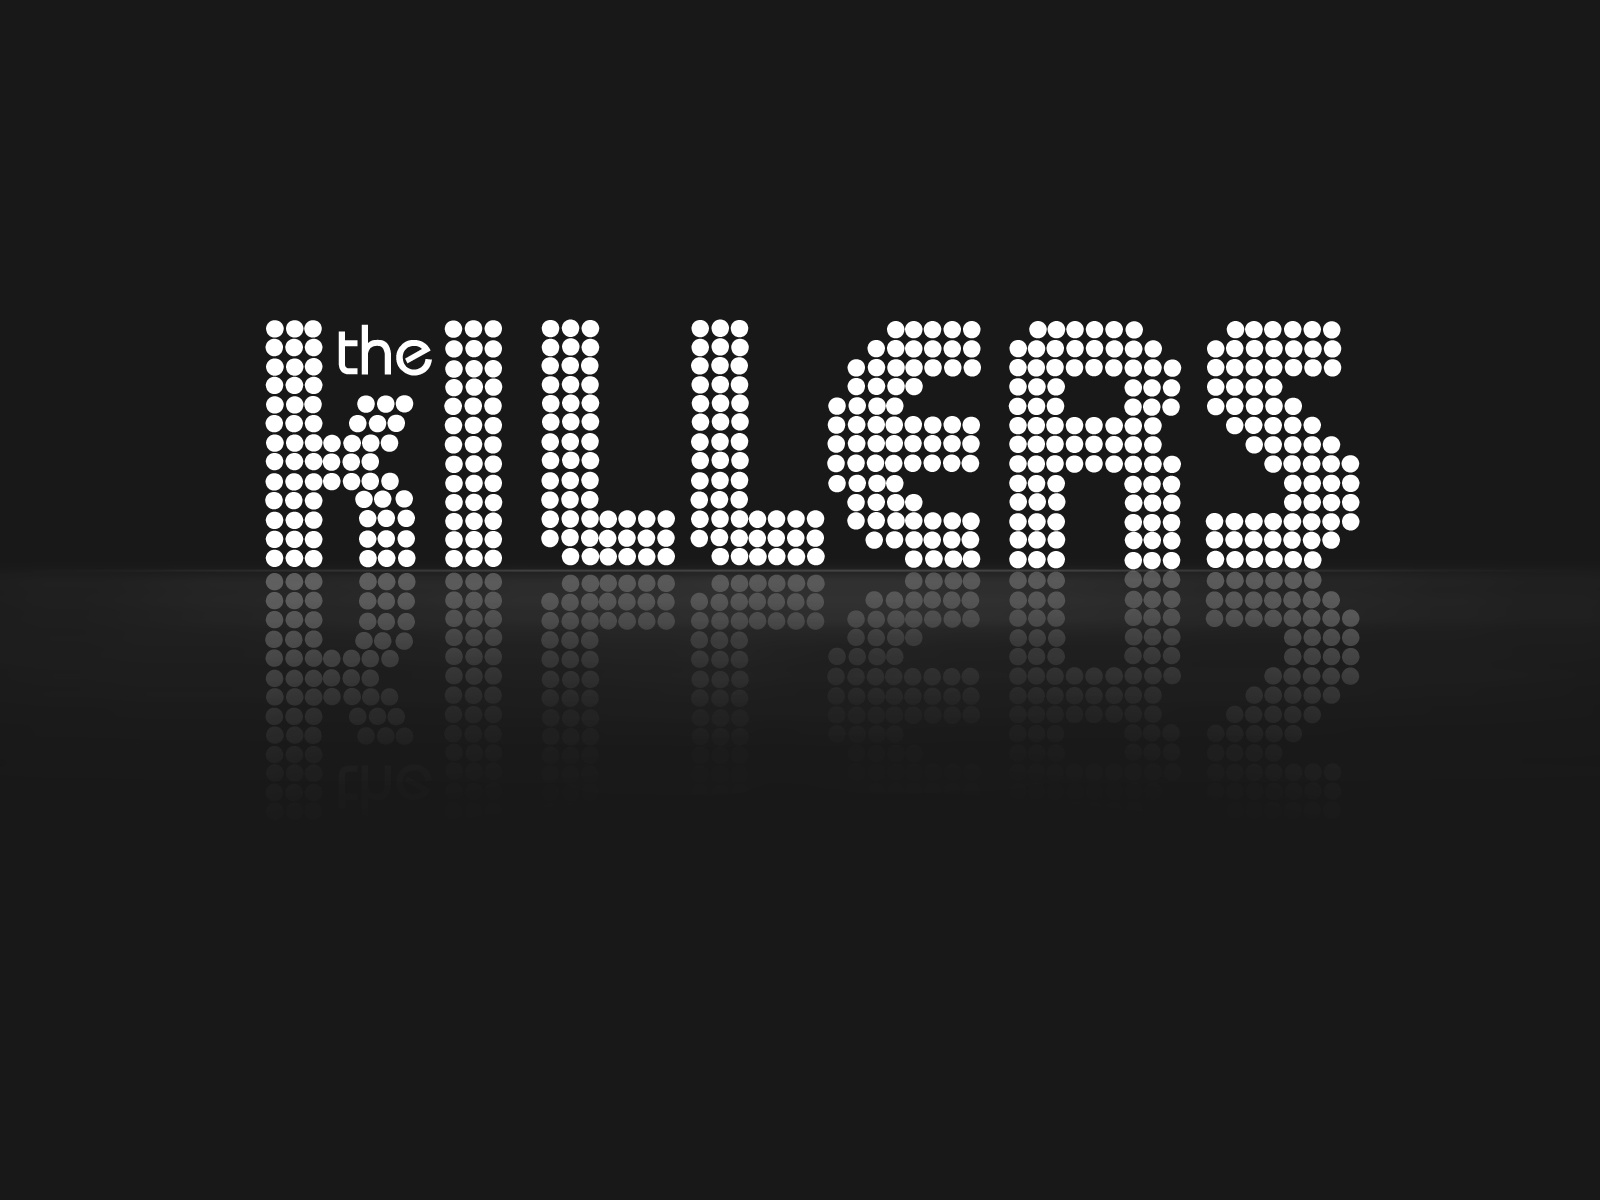 The killers by FT69